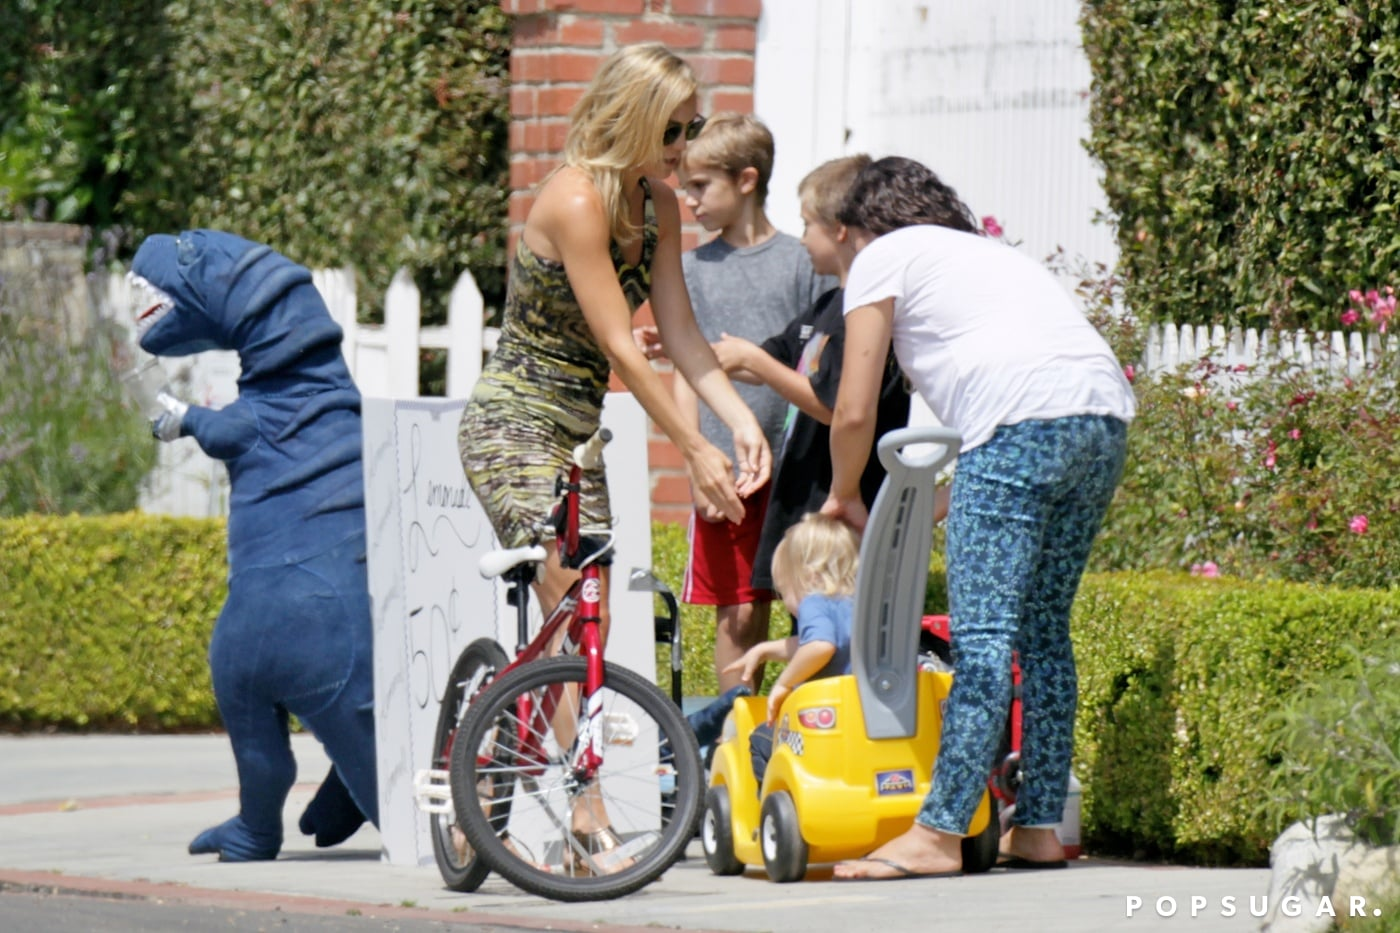 Kate Hudson's older son, Ryder Robinson, sold lemonade on the street corner.